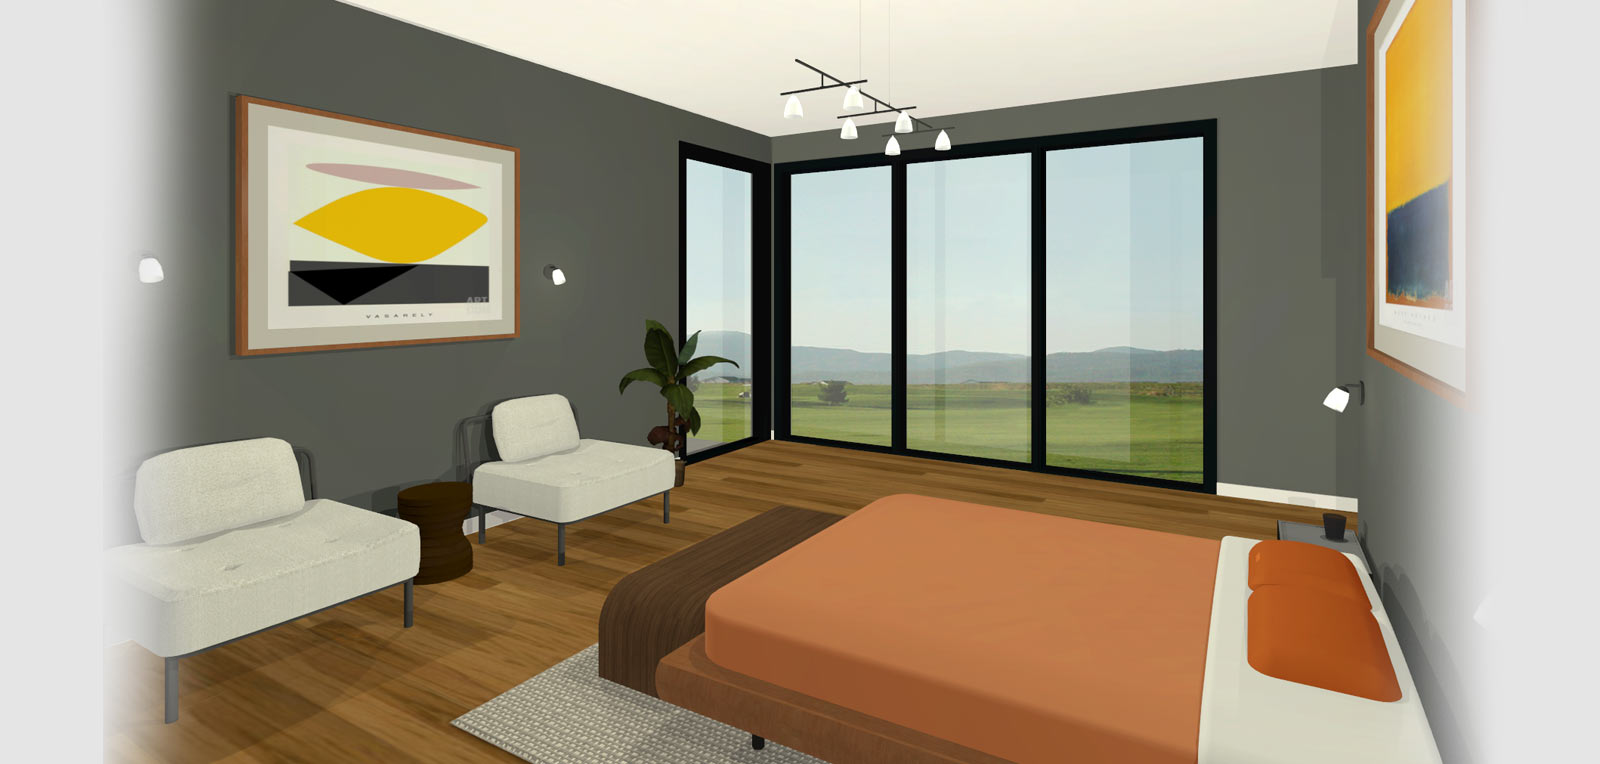 Home Designer Interior Design Software: windows home design software